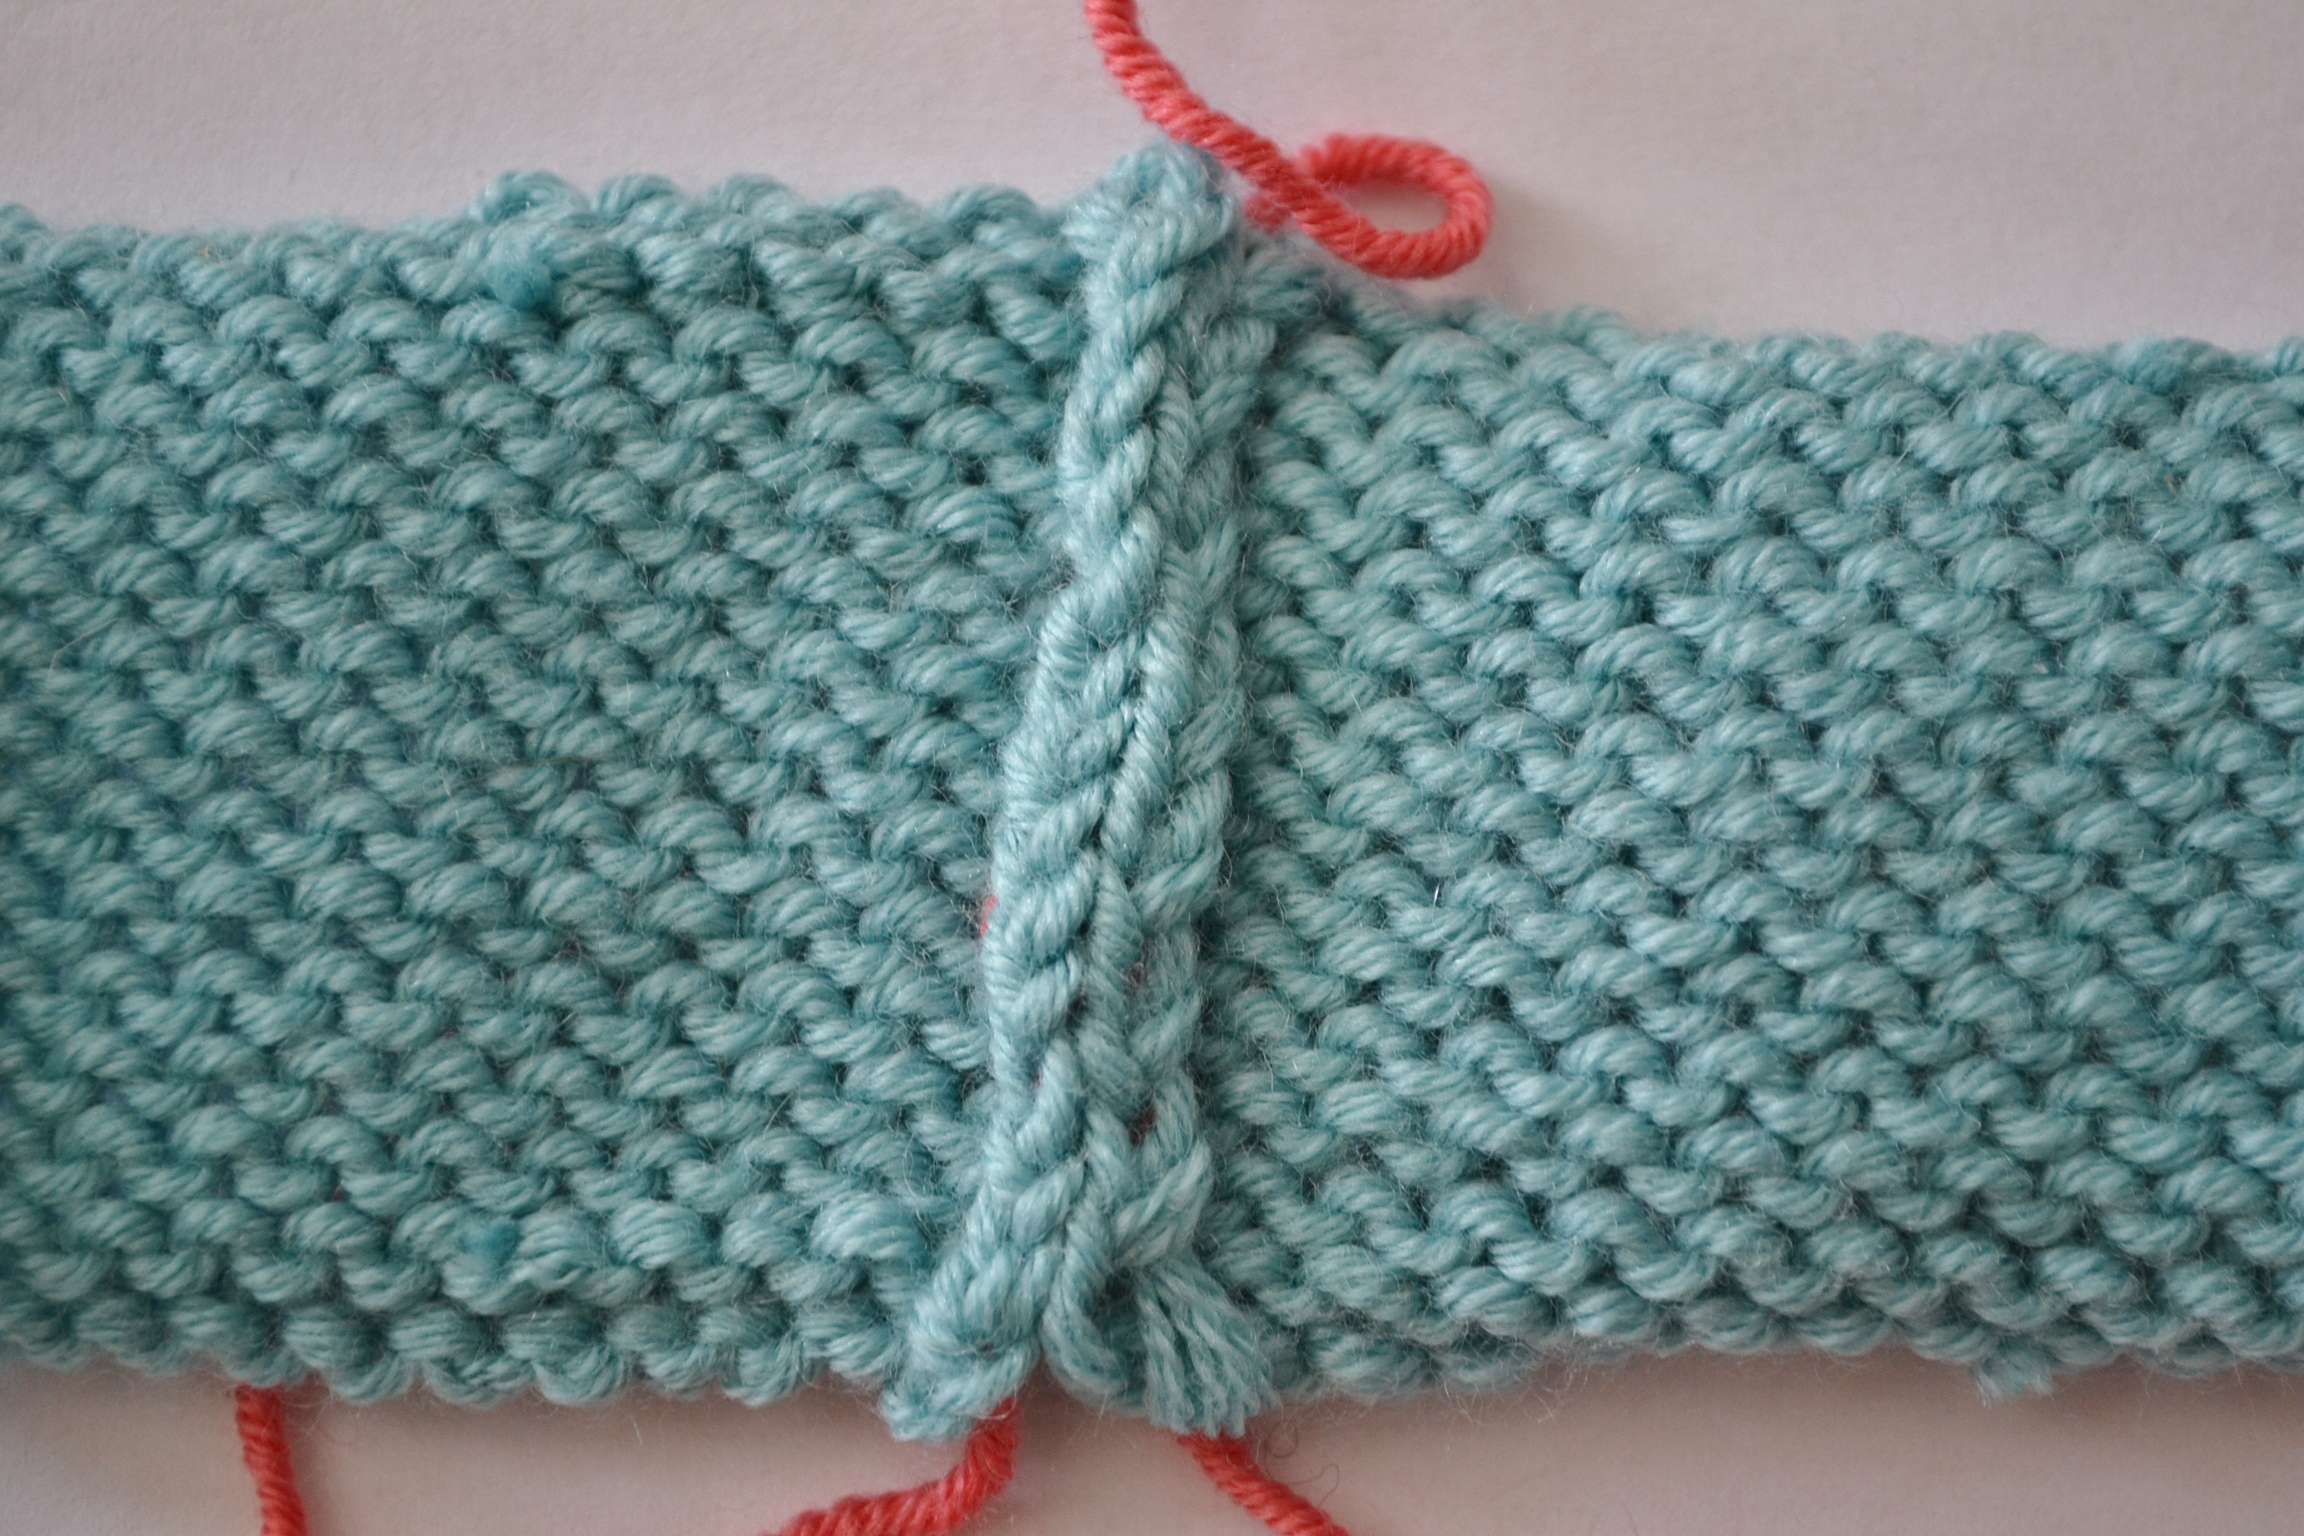 Mattress Stitch For Joining Knitting : How to Sew Invisible Vertical Seams in Knitting with Mattress Stitch aknitica